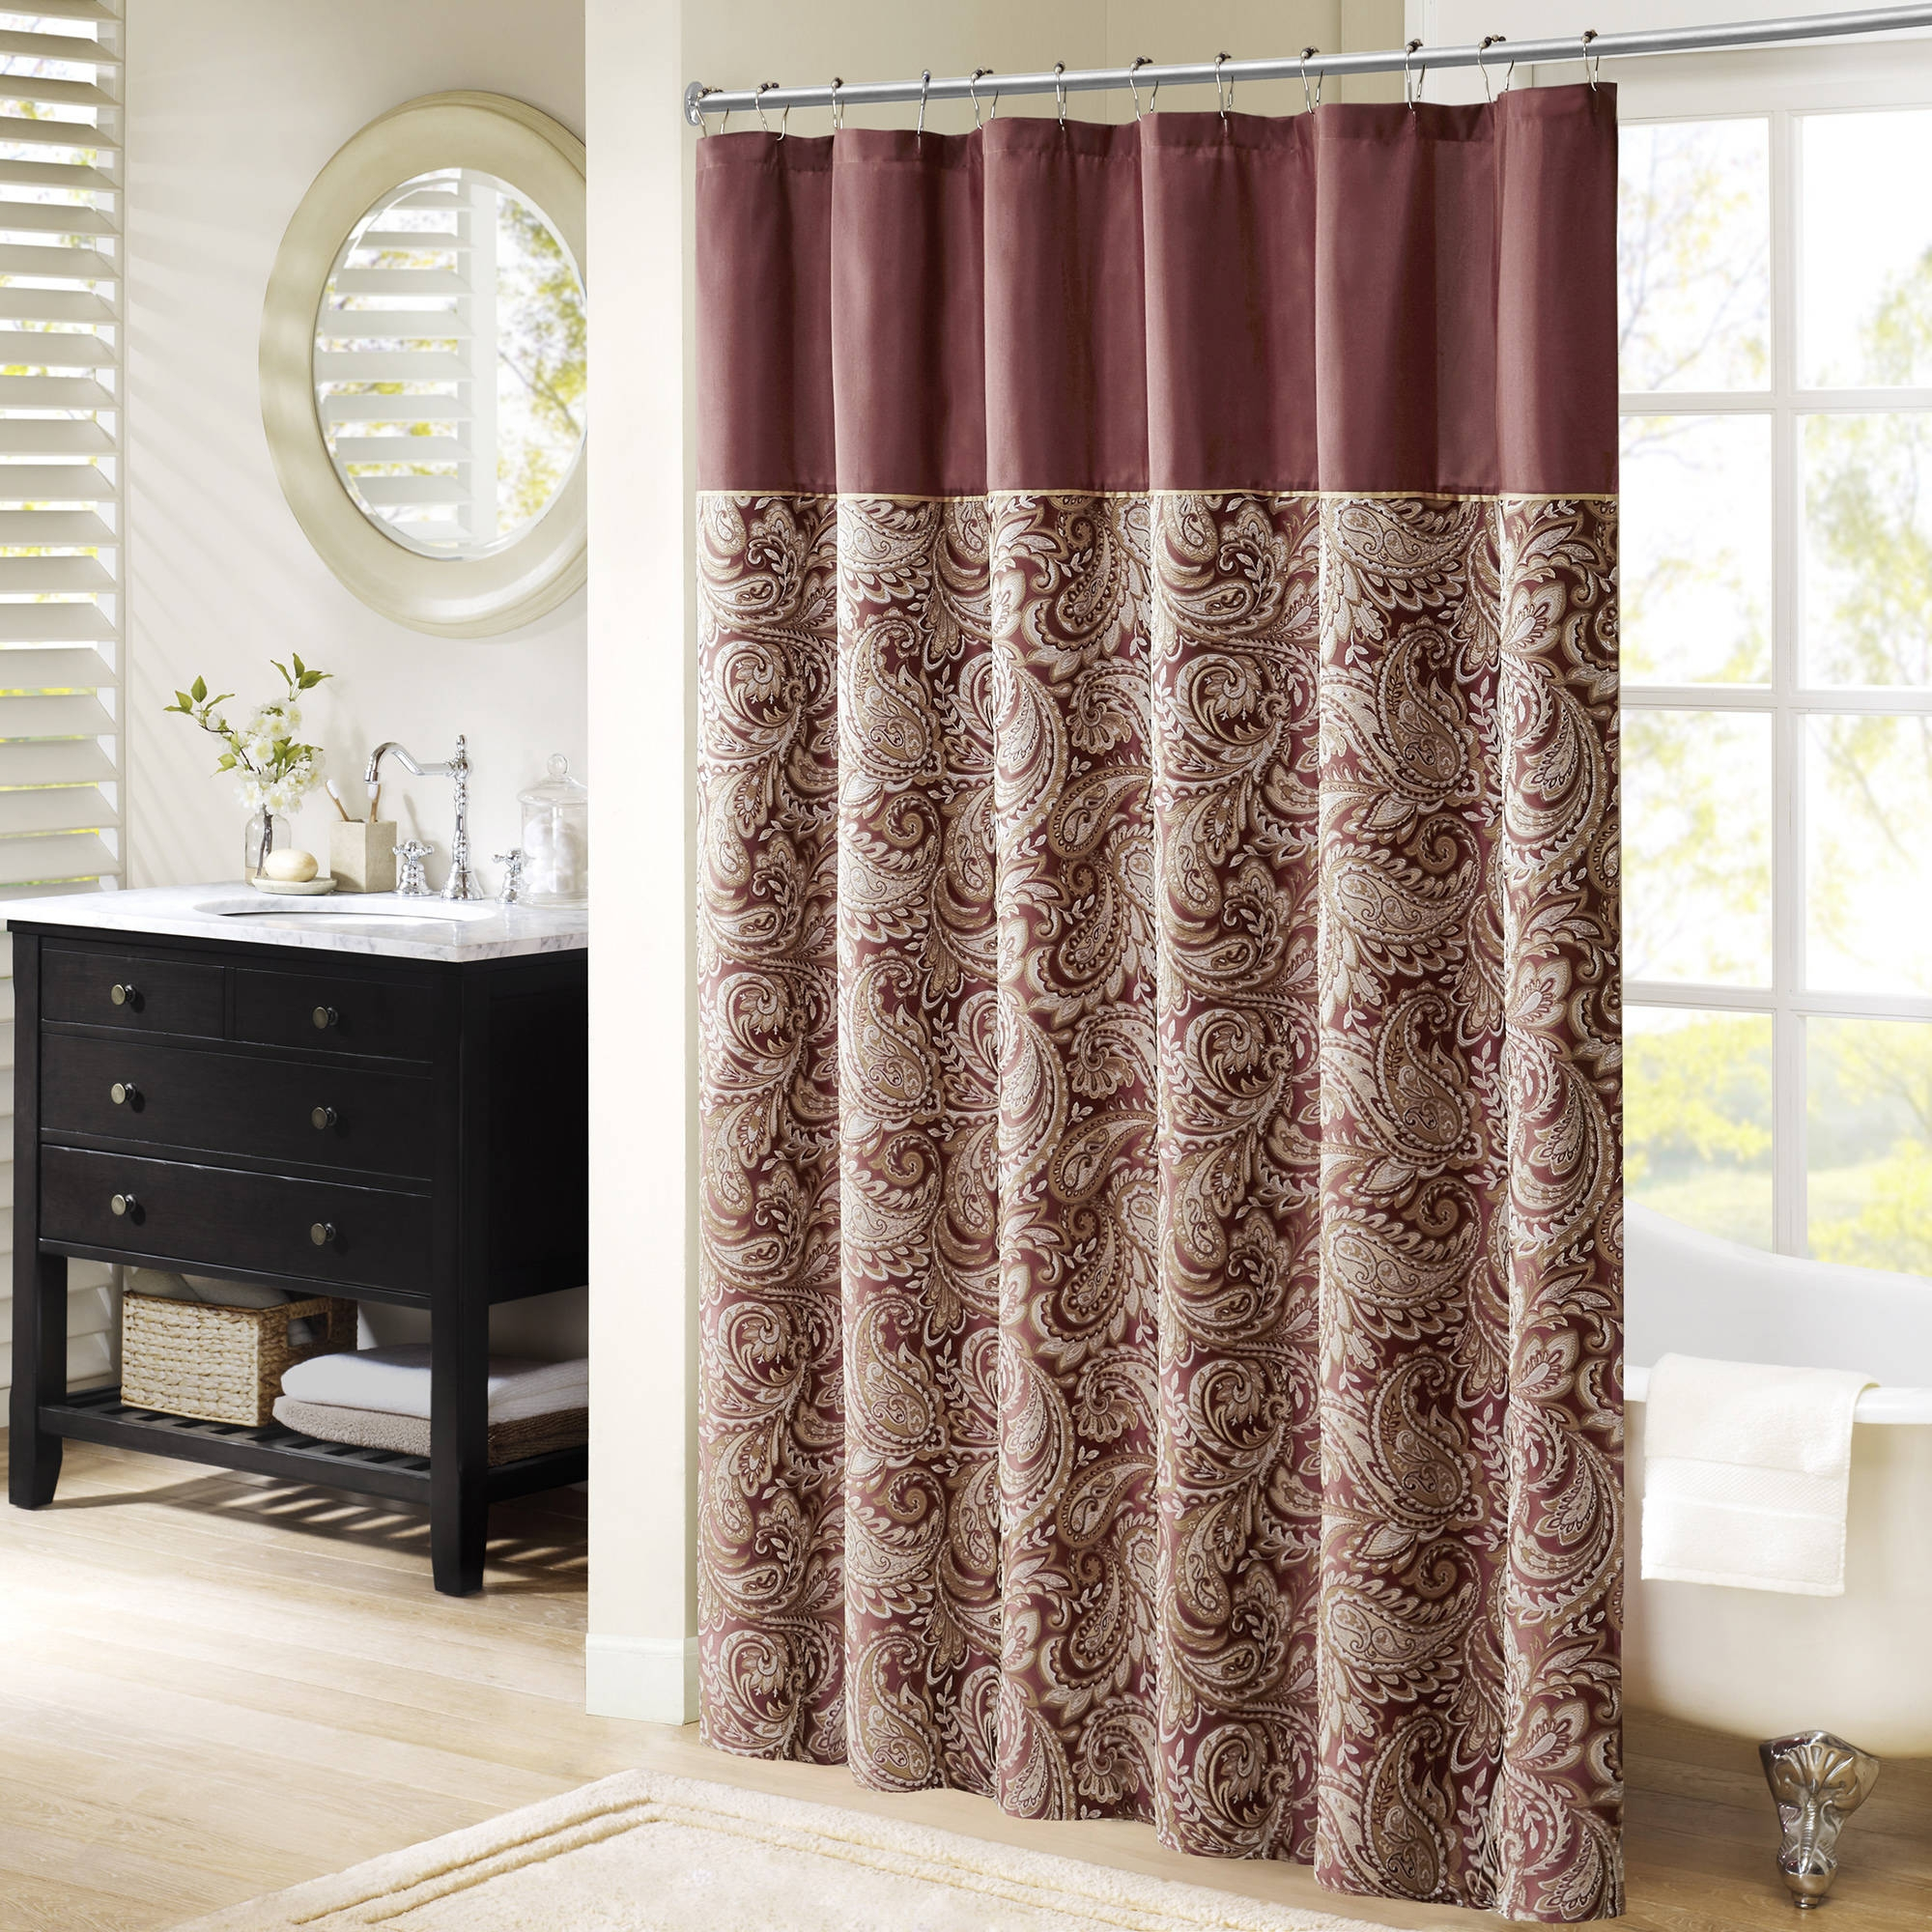 for of purple x drapes curtains and ideas grey or design inspirational shower gold window dimensions intended walmart unique interior curtain tsumi